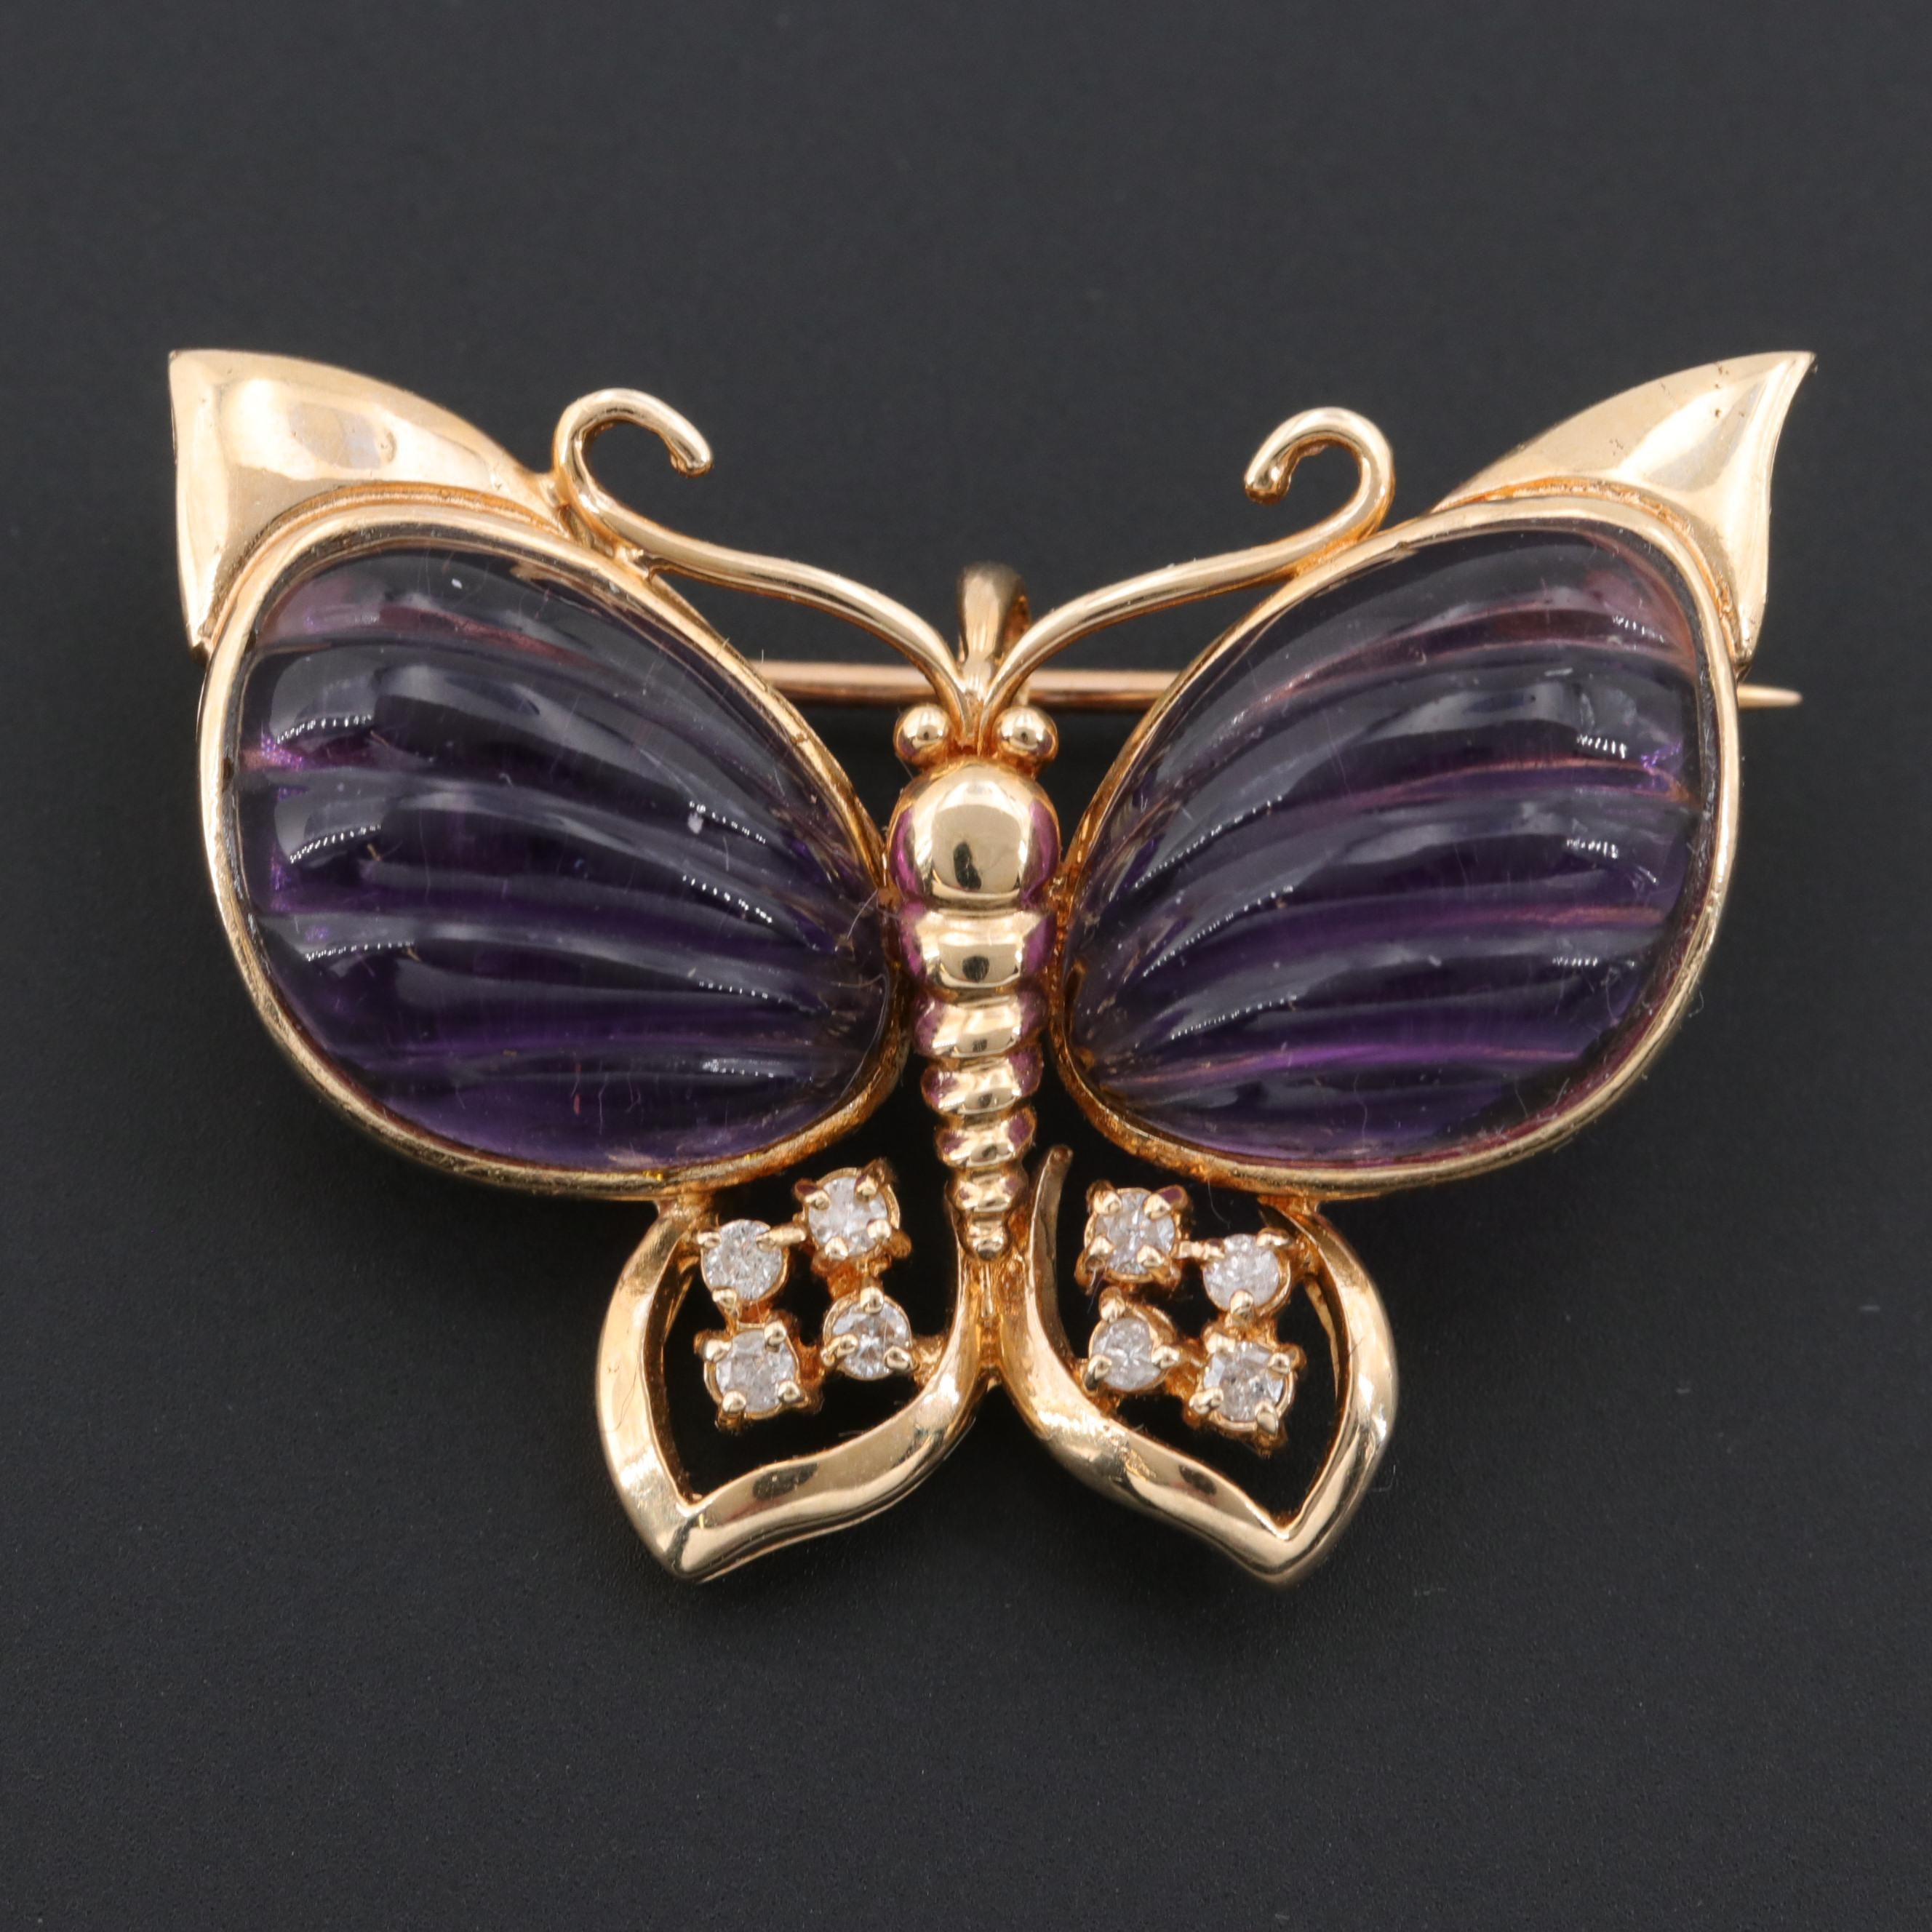 14K Yellow Gold Amethyst and Diamond Butterfly Brooch